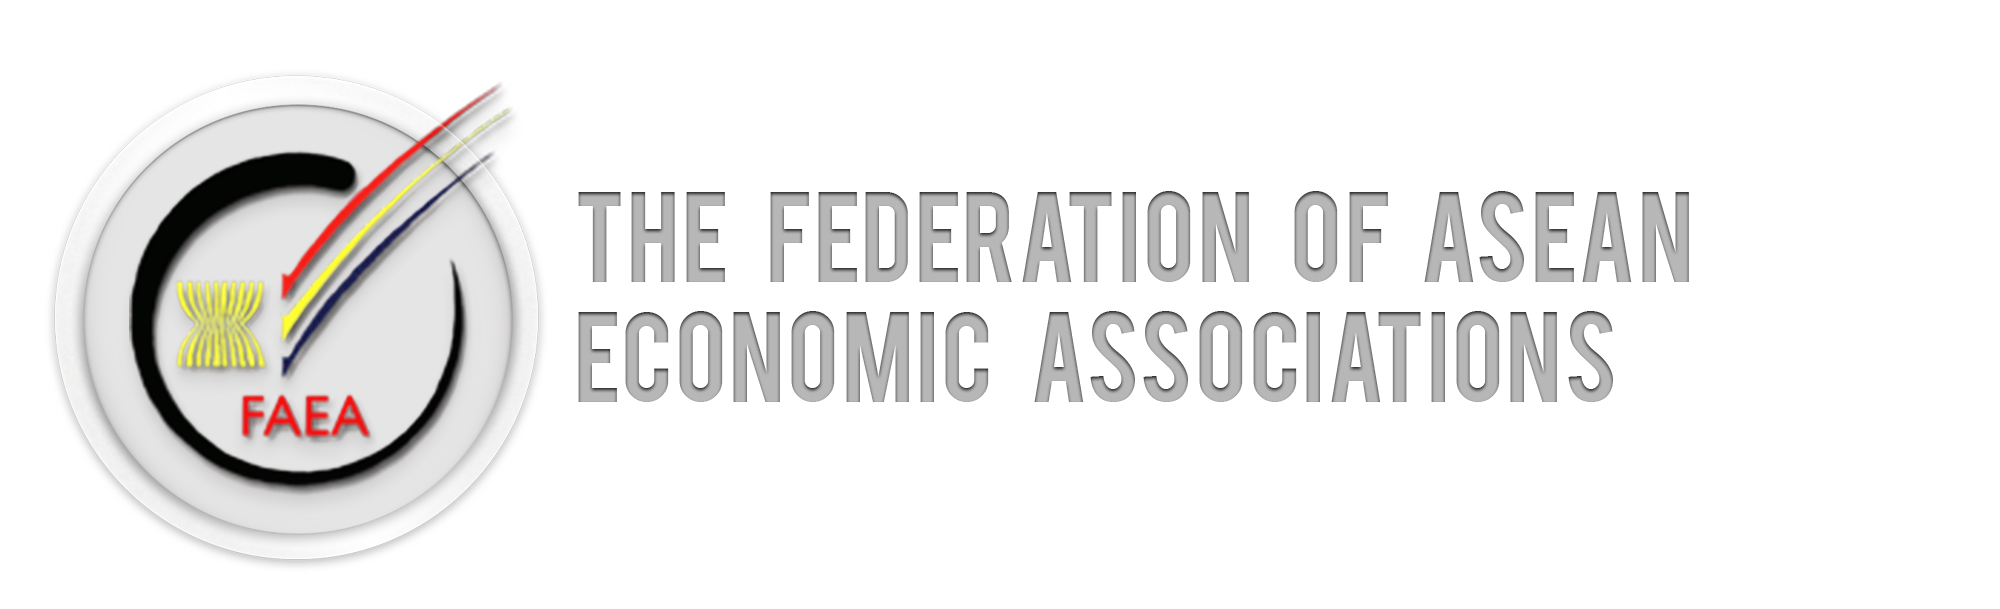 44th Conference of the Federation of ASEAN Economic Associations (FAEA)